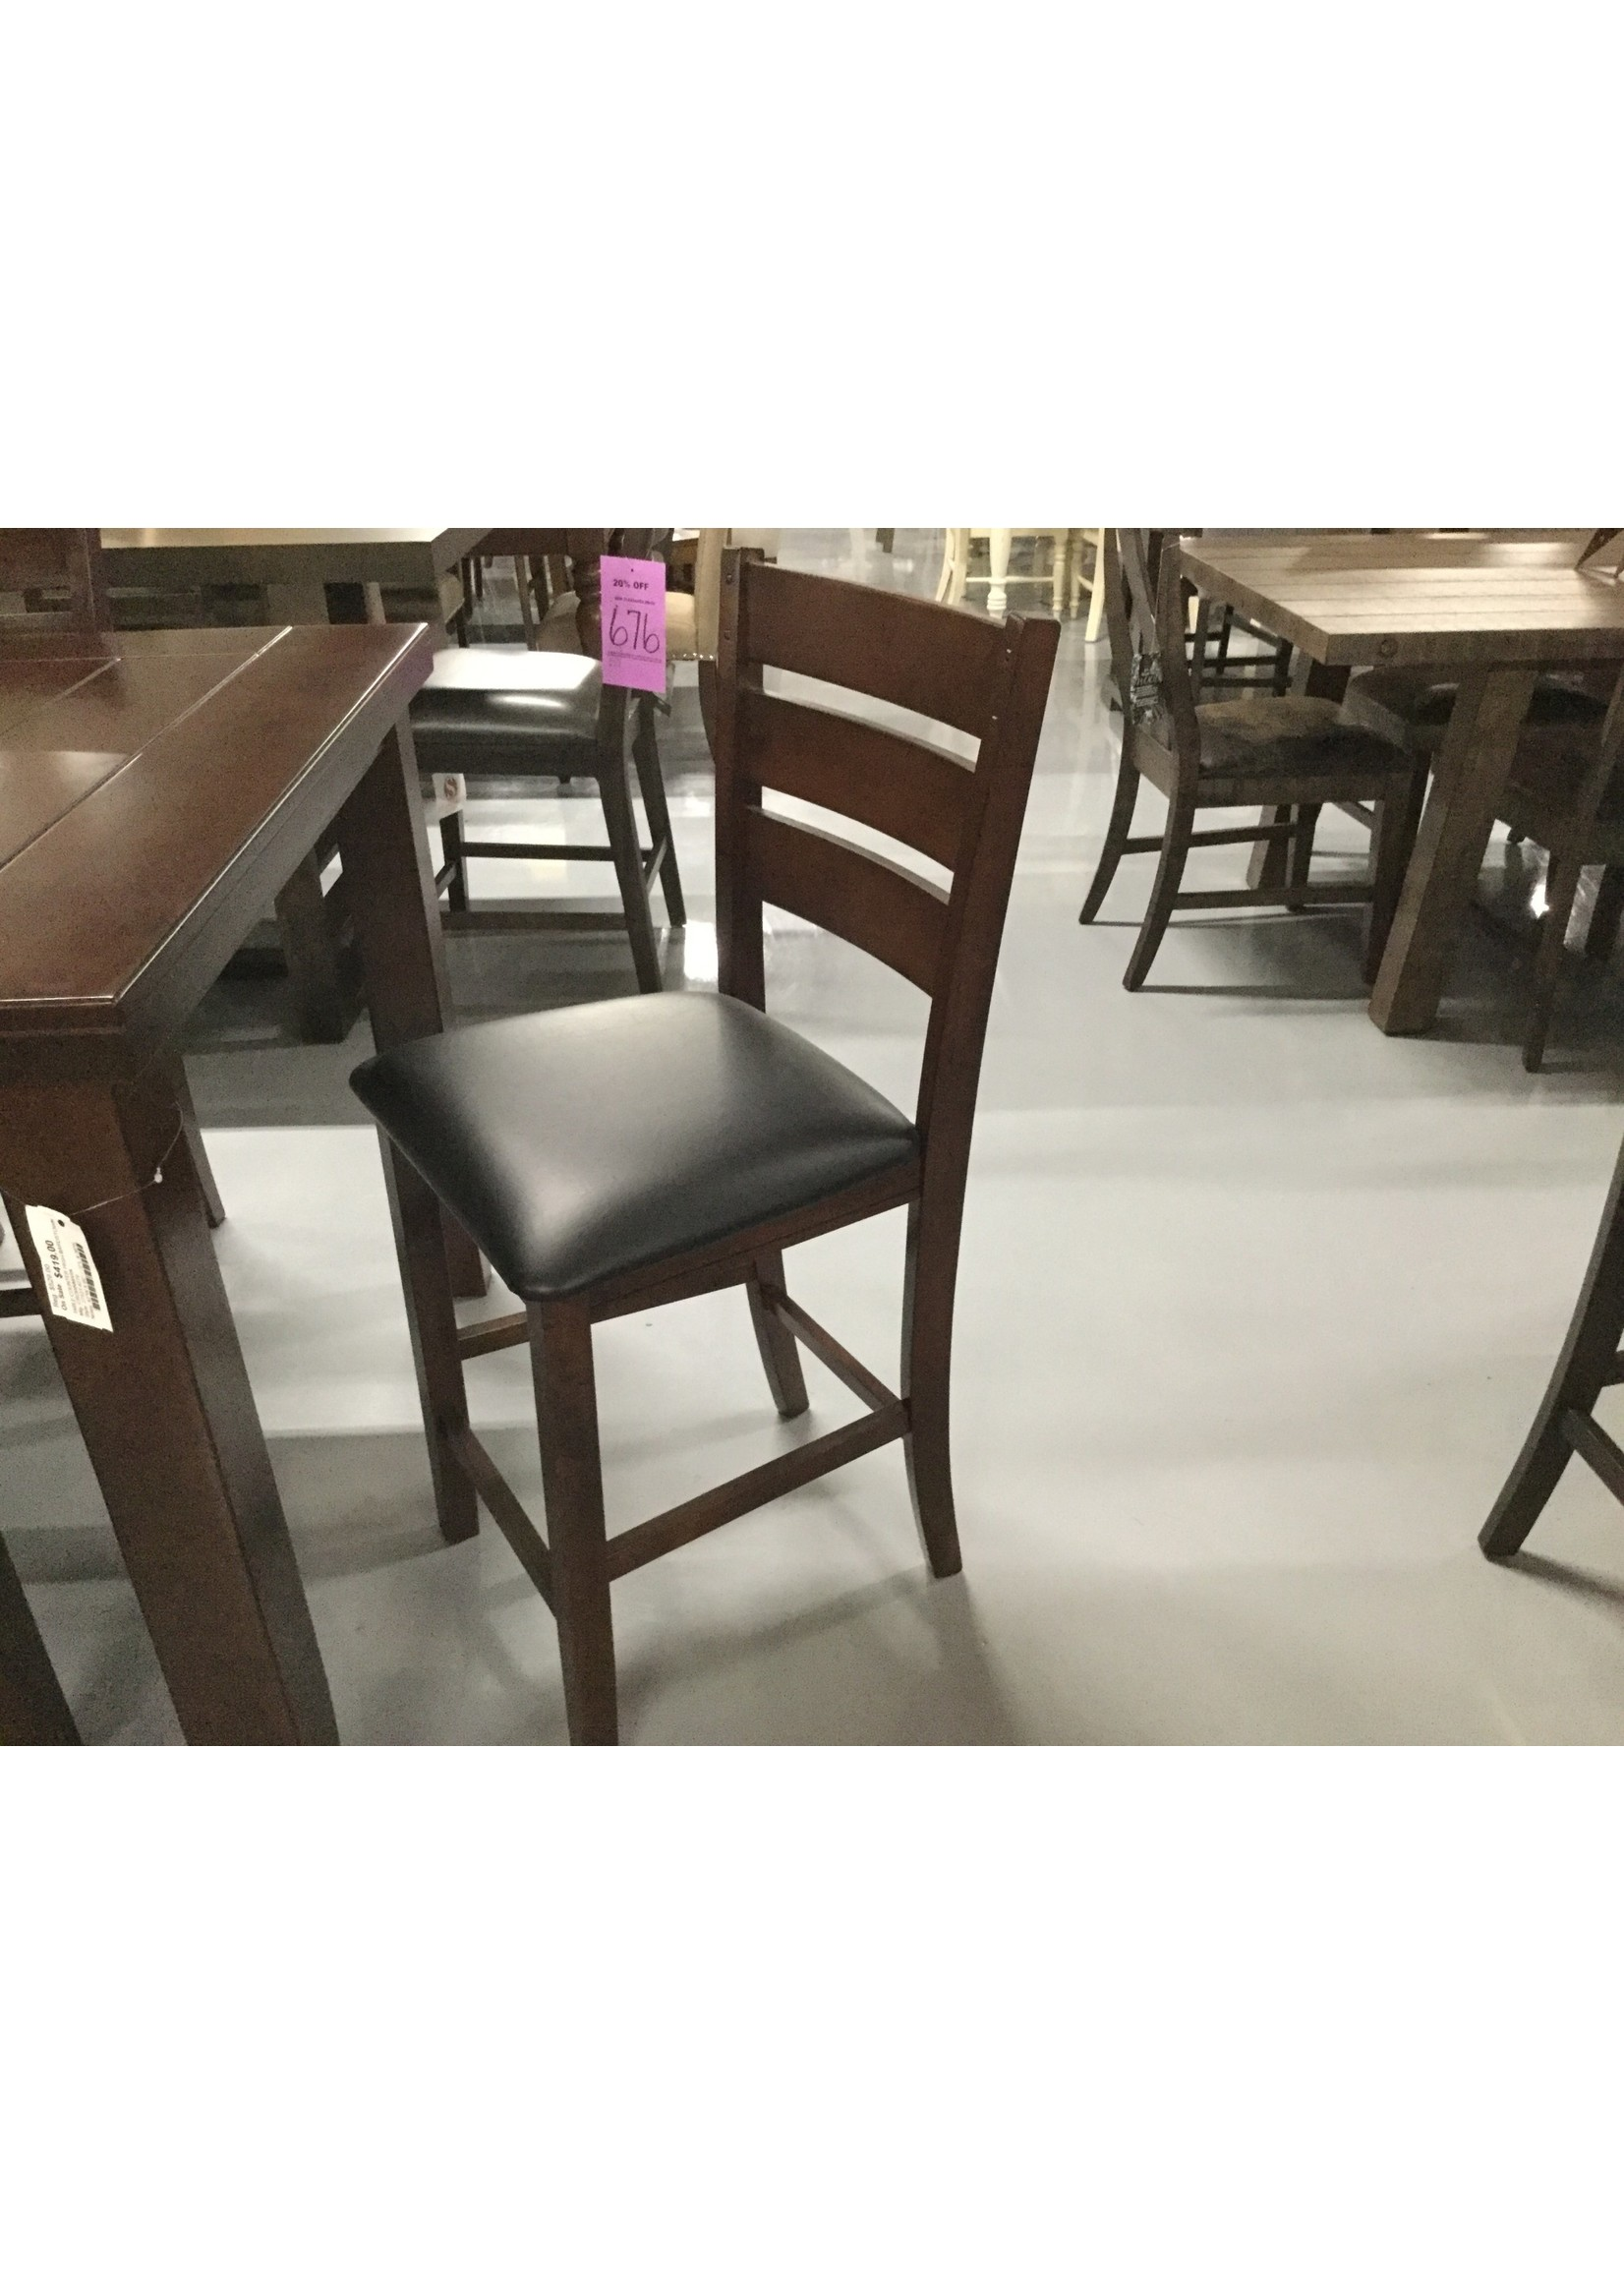 CROWNMARK 2752S-24 CHAIR COUNTER HEIGHT BARDSTOWN